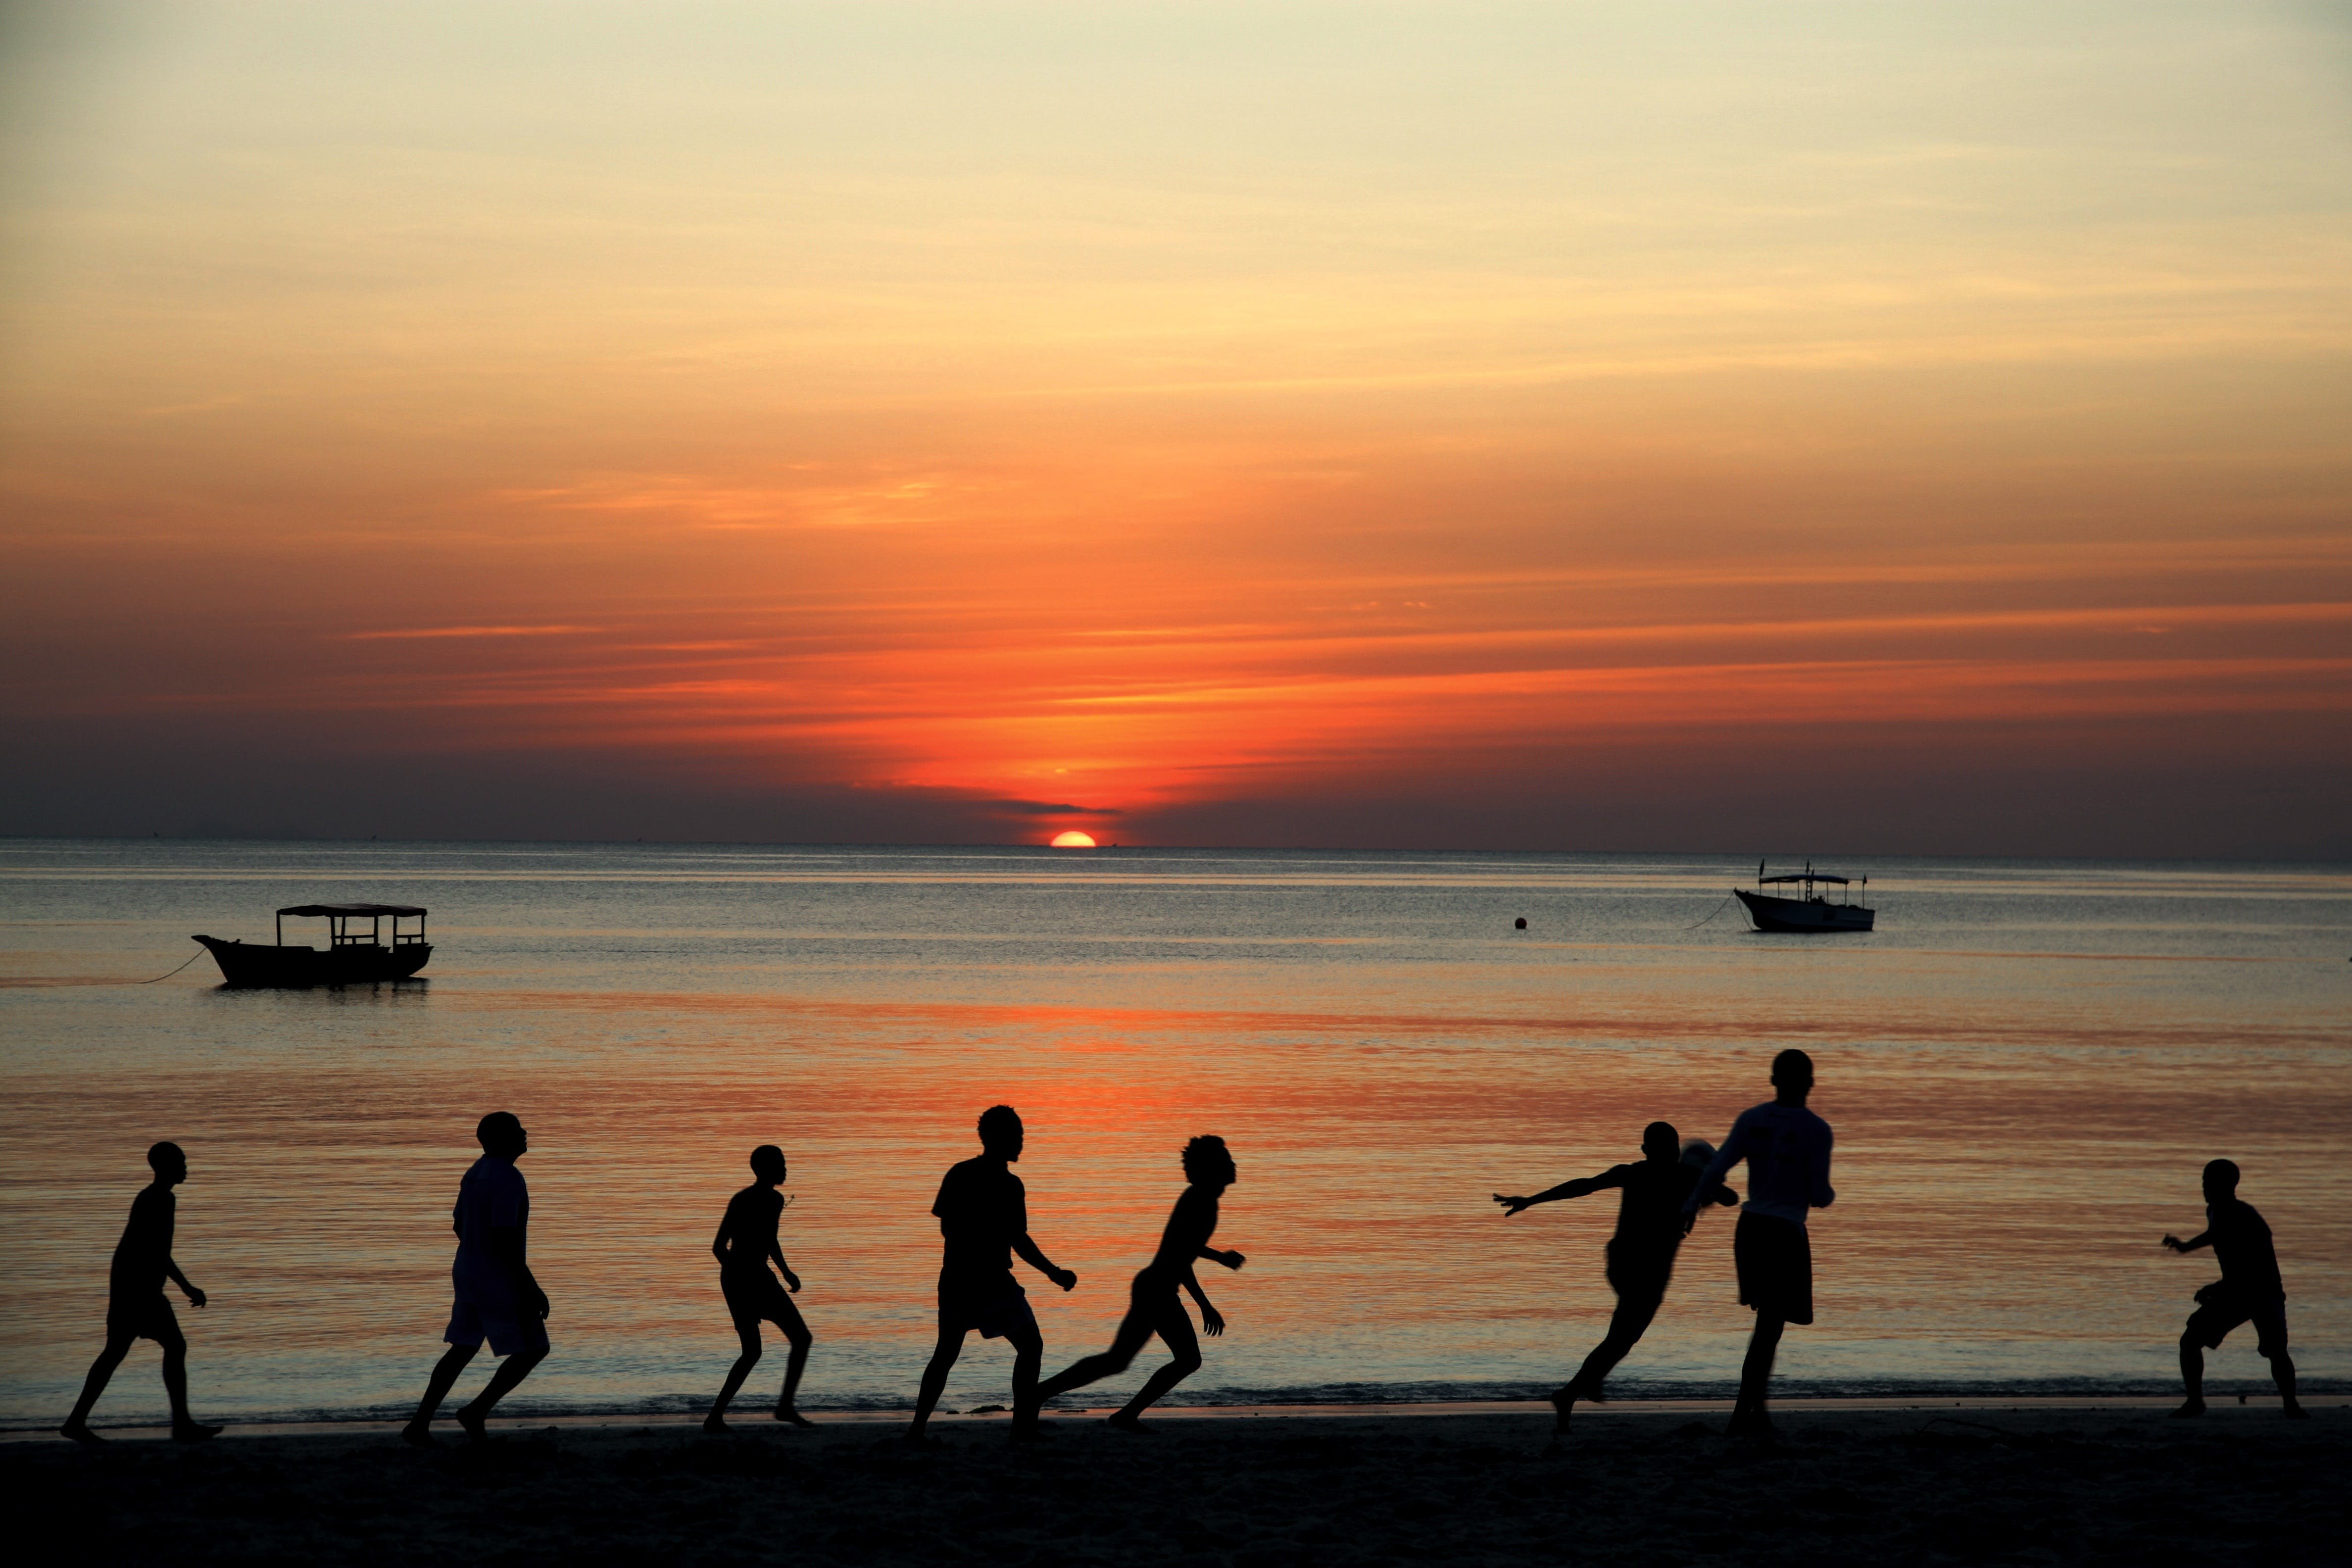 People Playing on Shore during Sunset